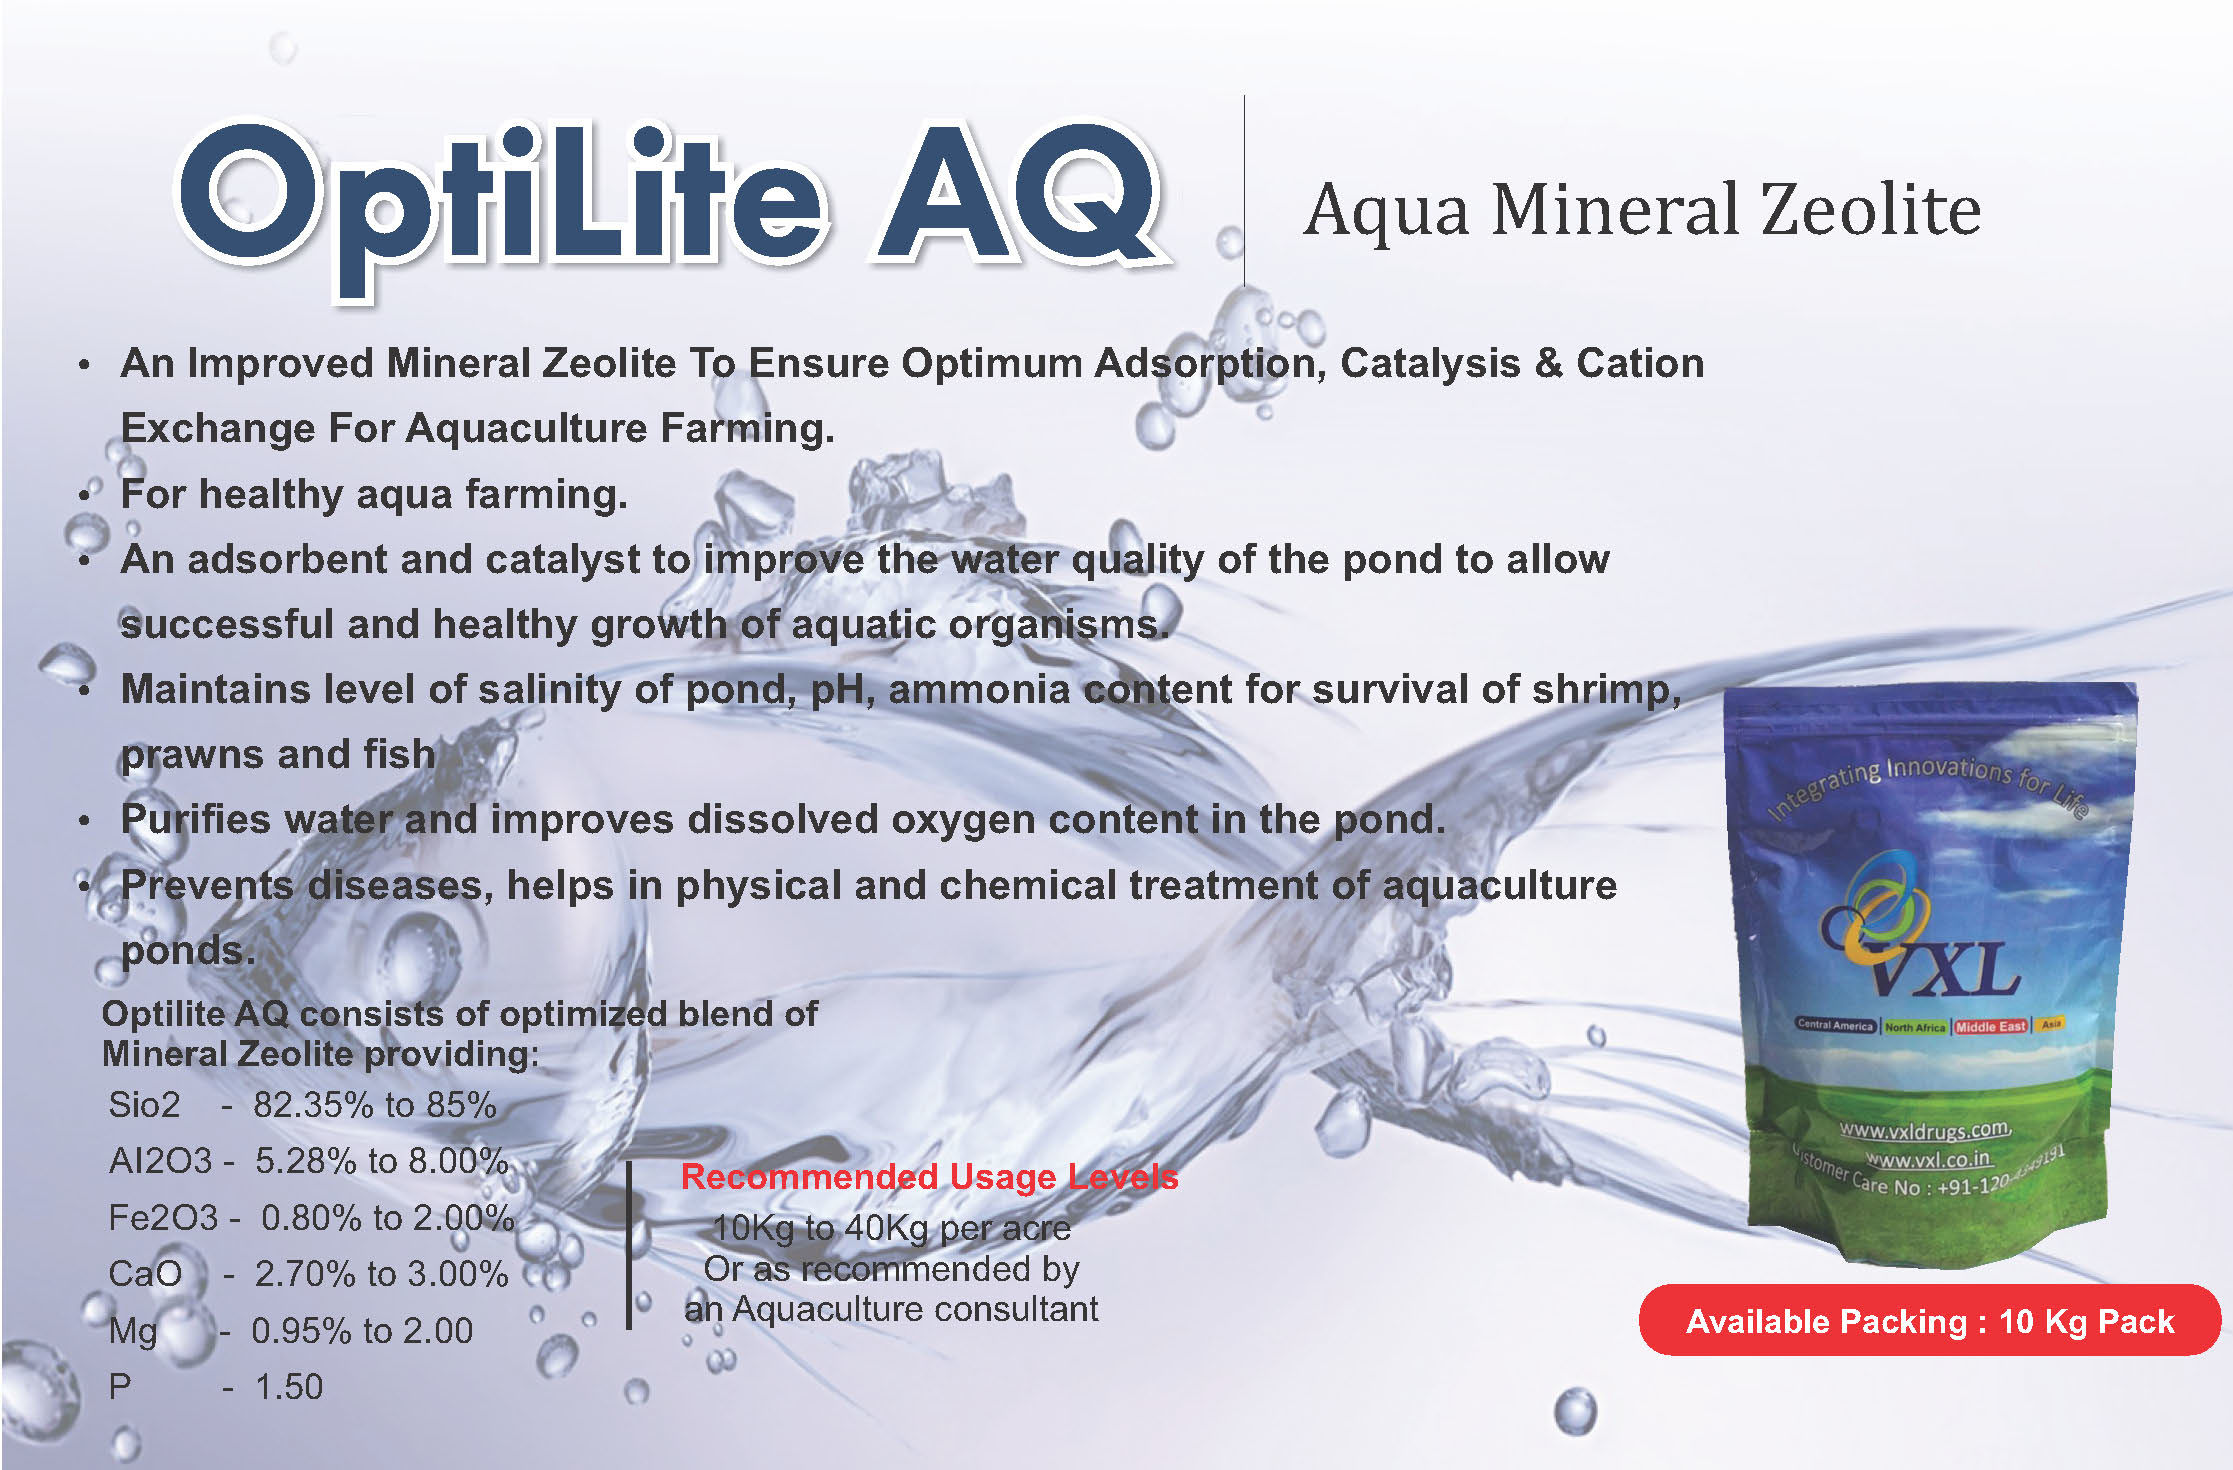 Optilite AQ - Aqua Mineral Zeolite Powder